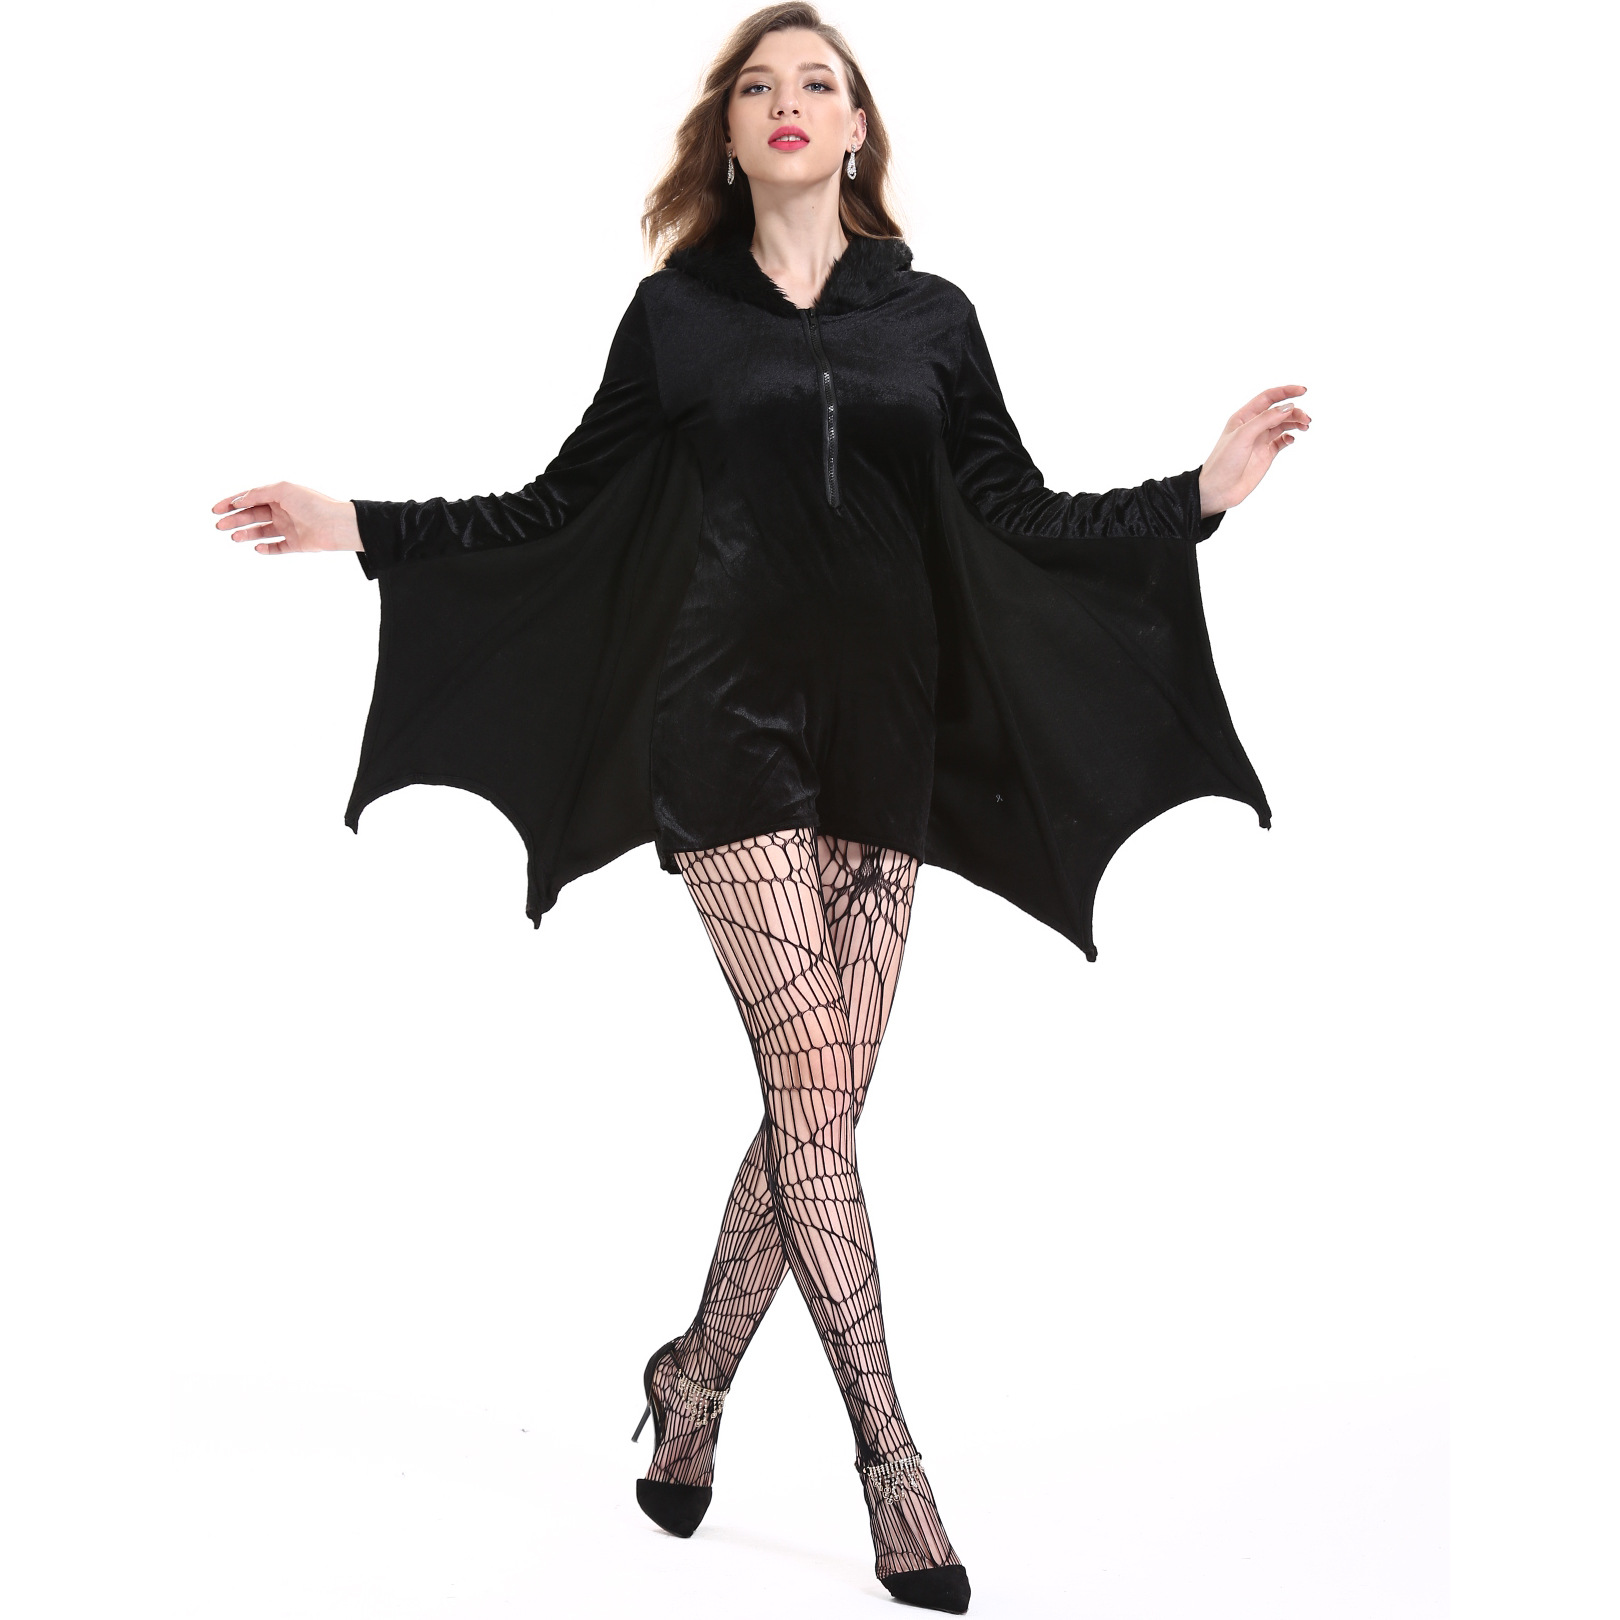 2pcs <font><b>Halloween</b></font> <font><b>Sexy</b></font> <font><b>Vampire</b></font> <font><b>Costume</b></font> Women Black Evil Bat <font><b>Costume</b></font> Clothes Masquerade Carnival Role Playing <font><b>Vampire</b></font> <font><b>Costumes</b></font> image